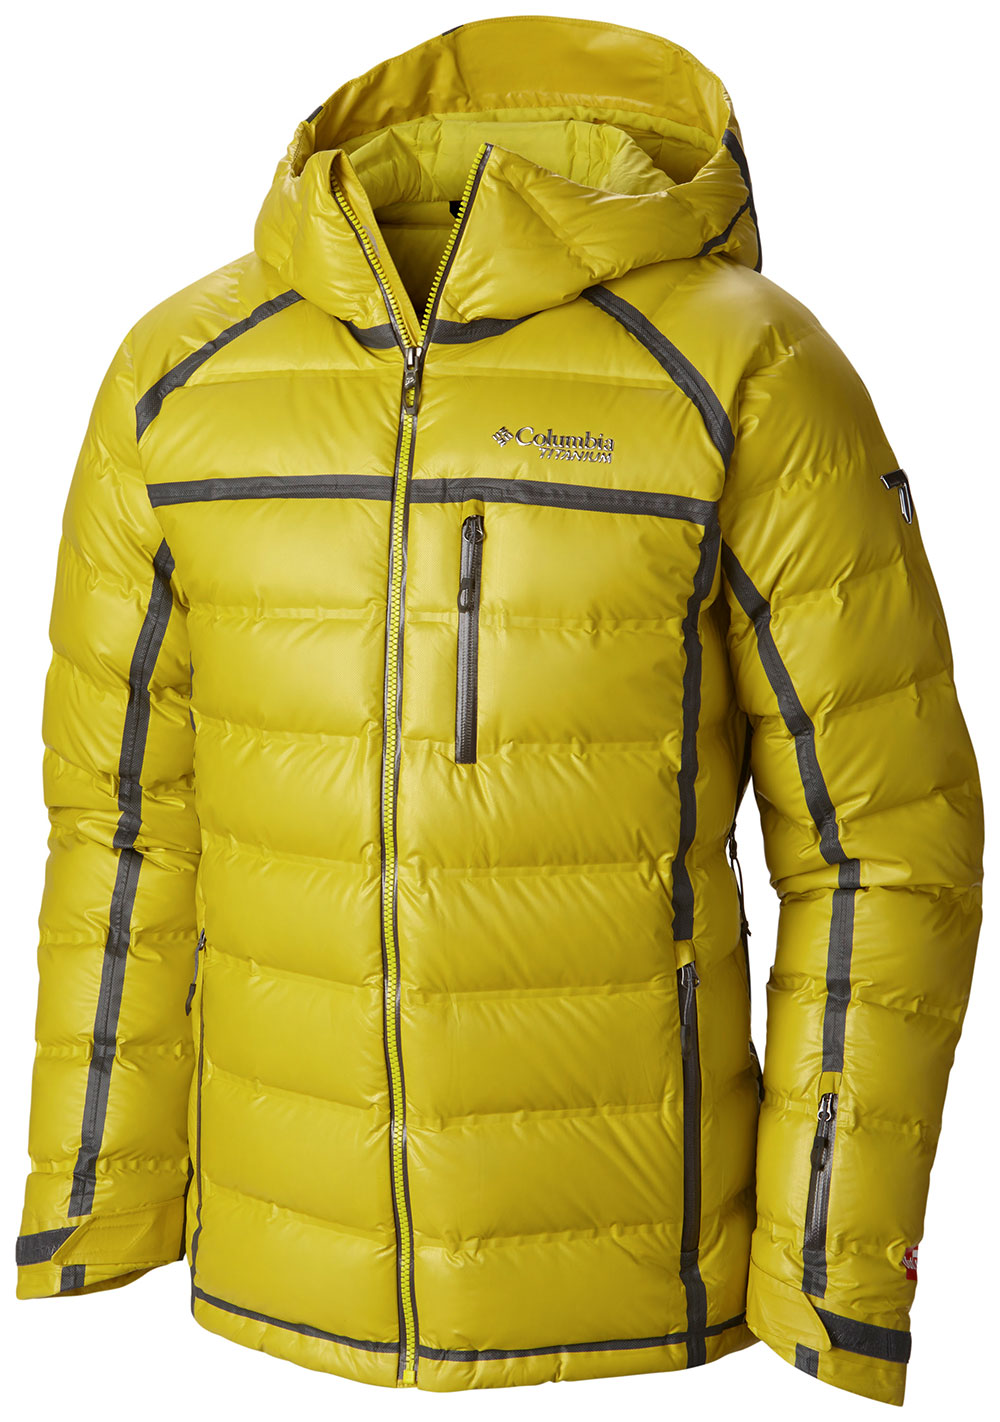 New-School Warmth: Waterproof Columbia 'Puffy' Coming 2016